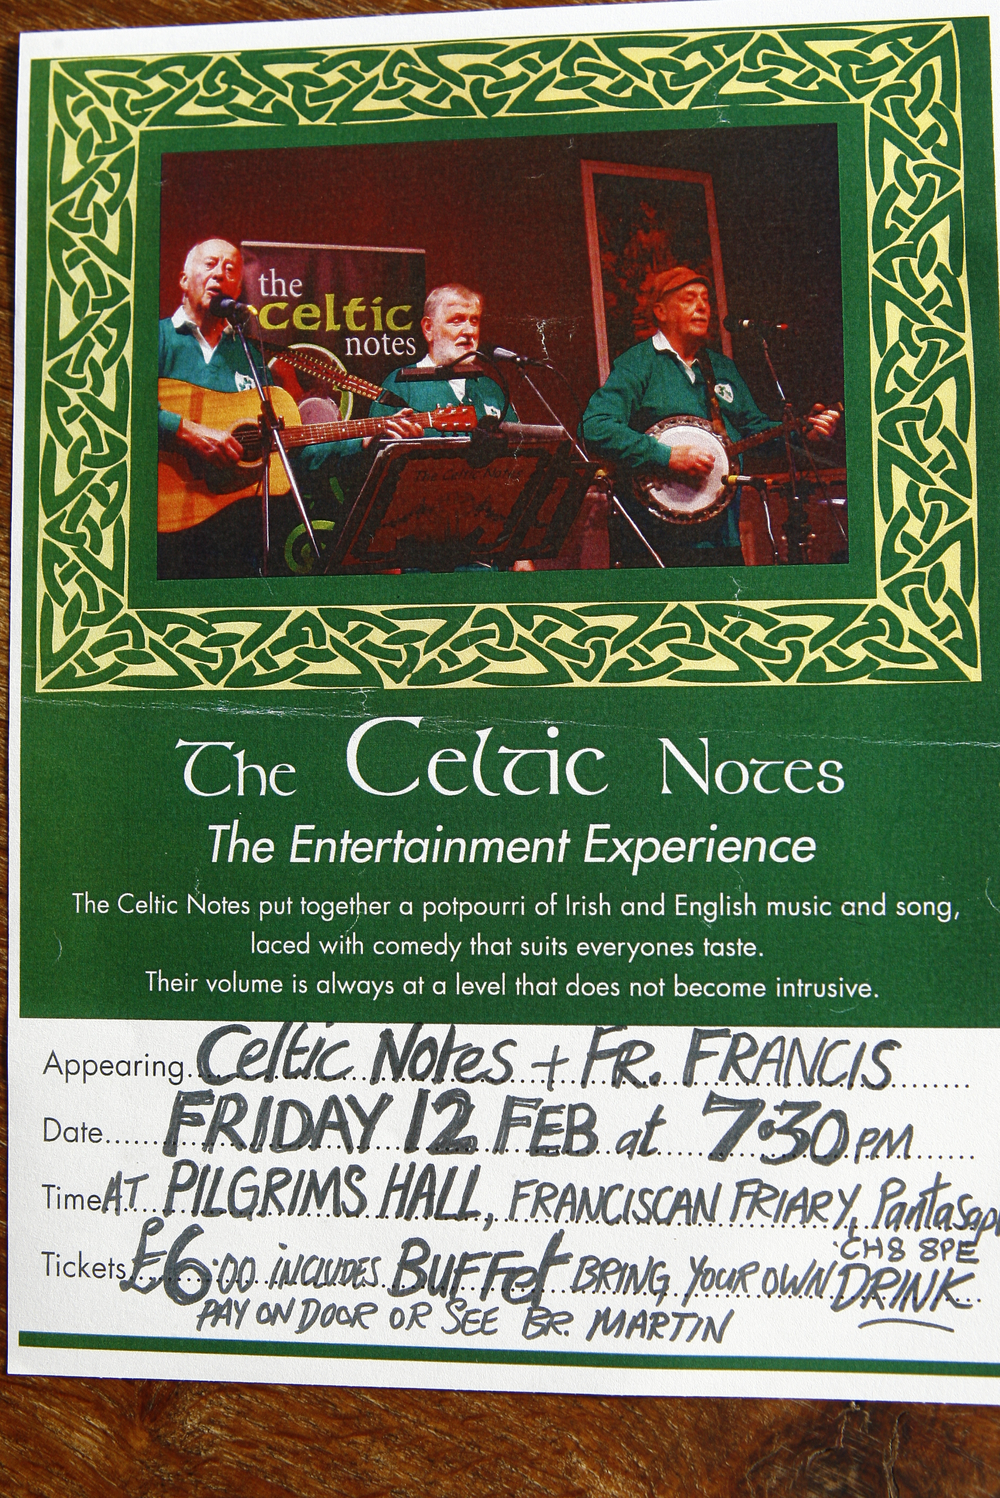 Why not join us here at St Pios Cafe for a fun night of entertainment?  The Celtic notes will be performing in the Pilgrims Hall with Fr Francis. For more information take a look at the event calendar.